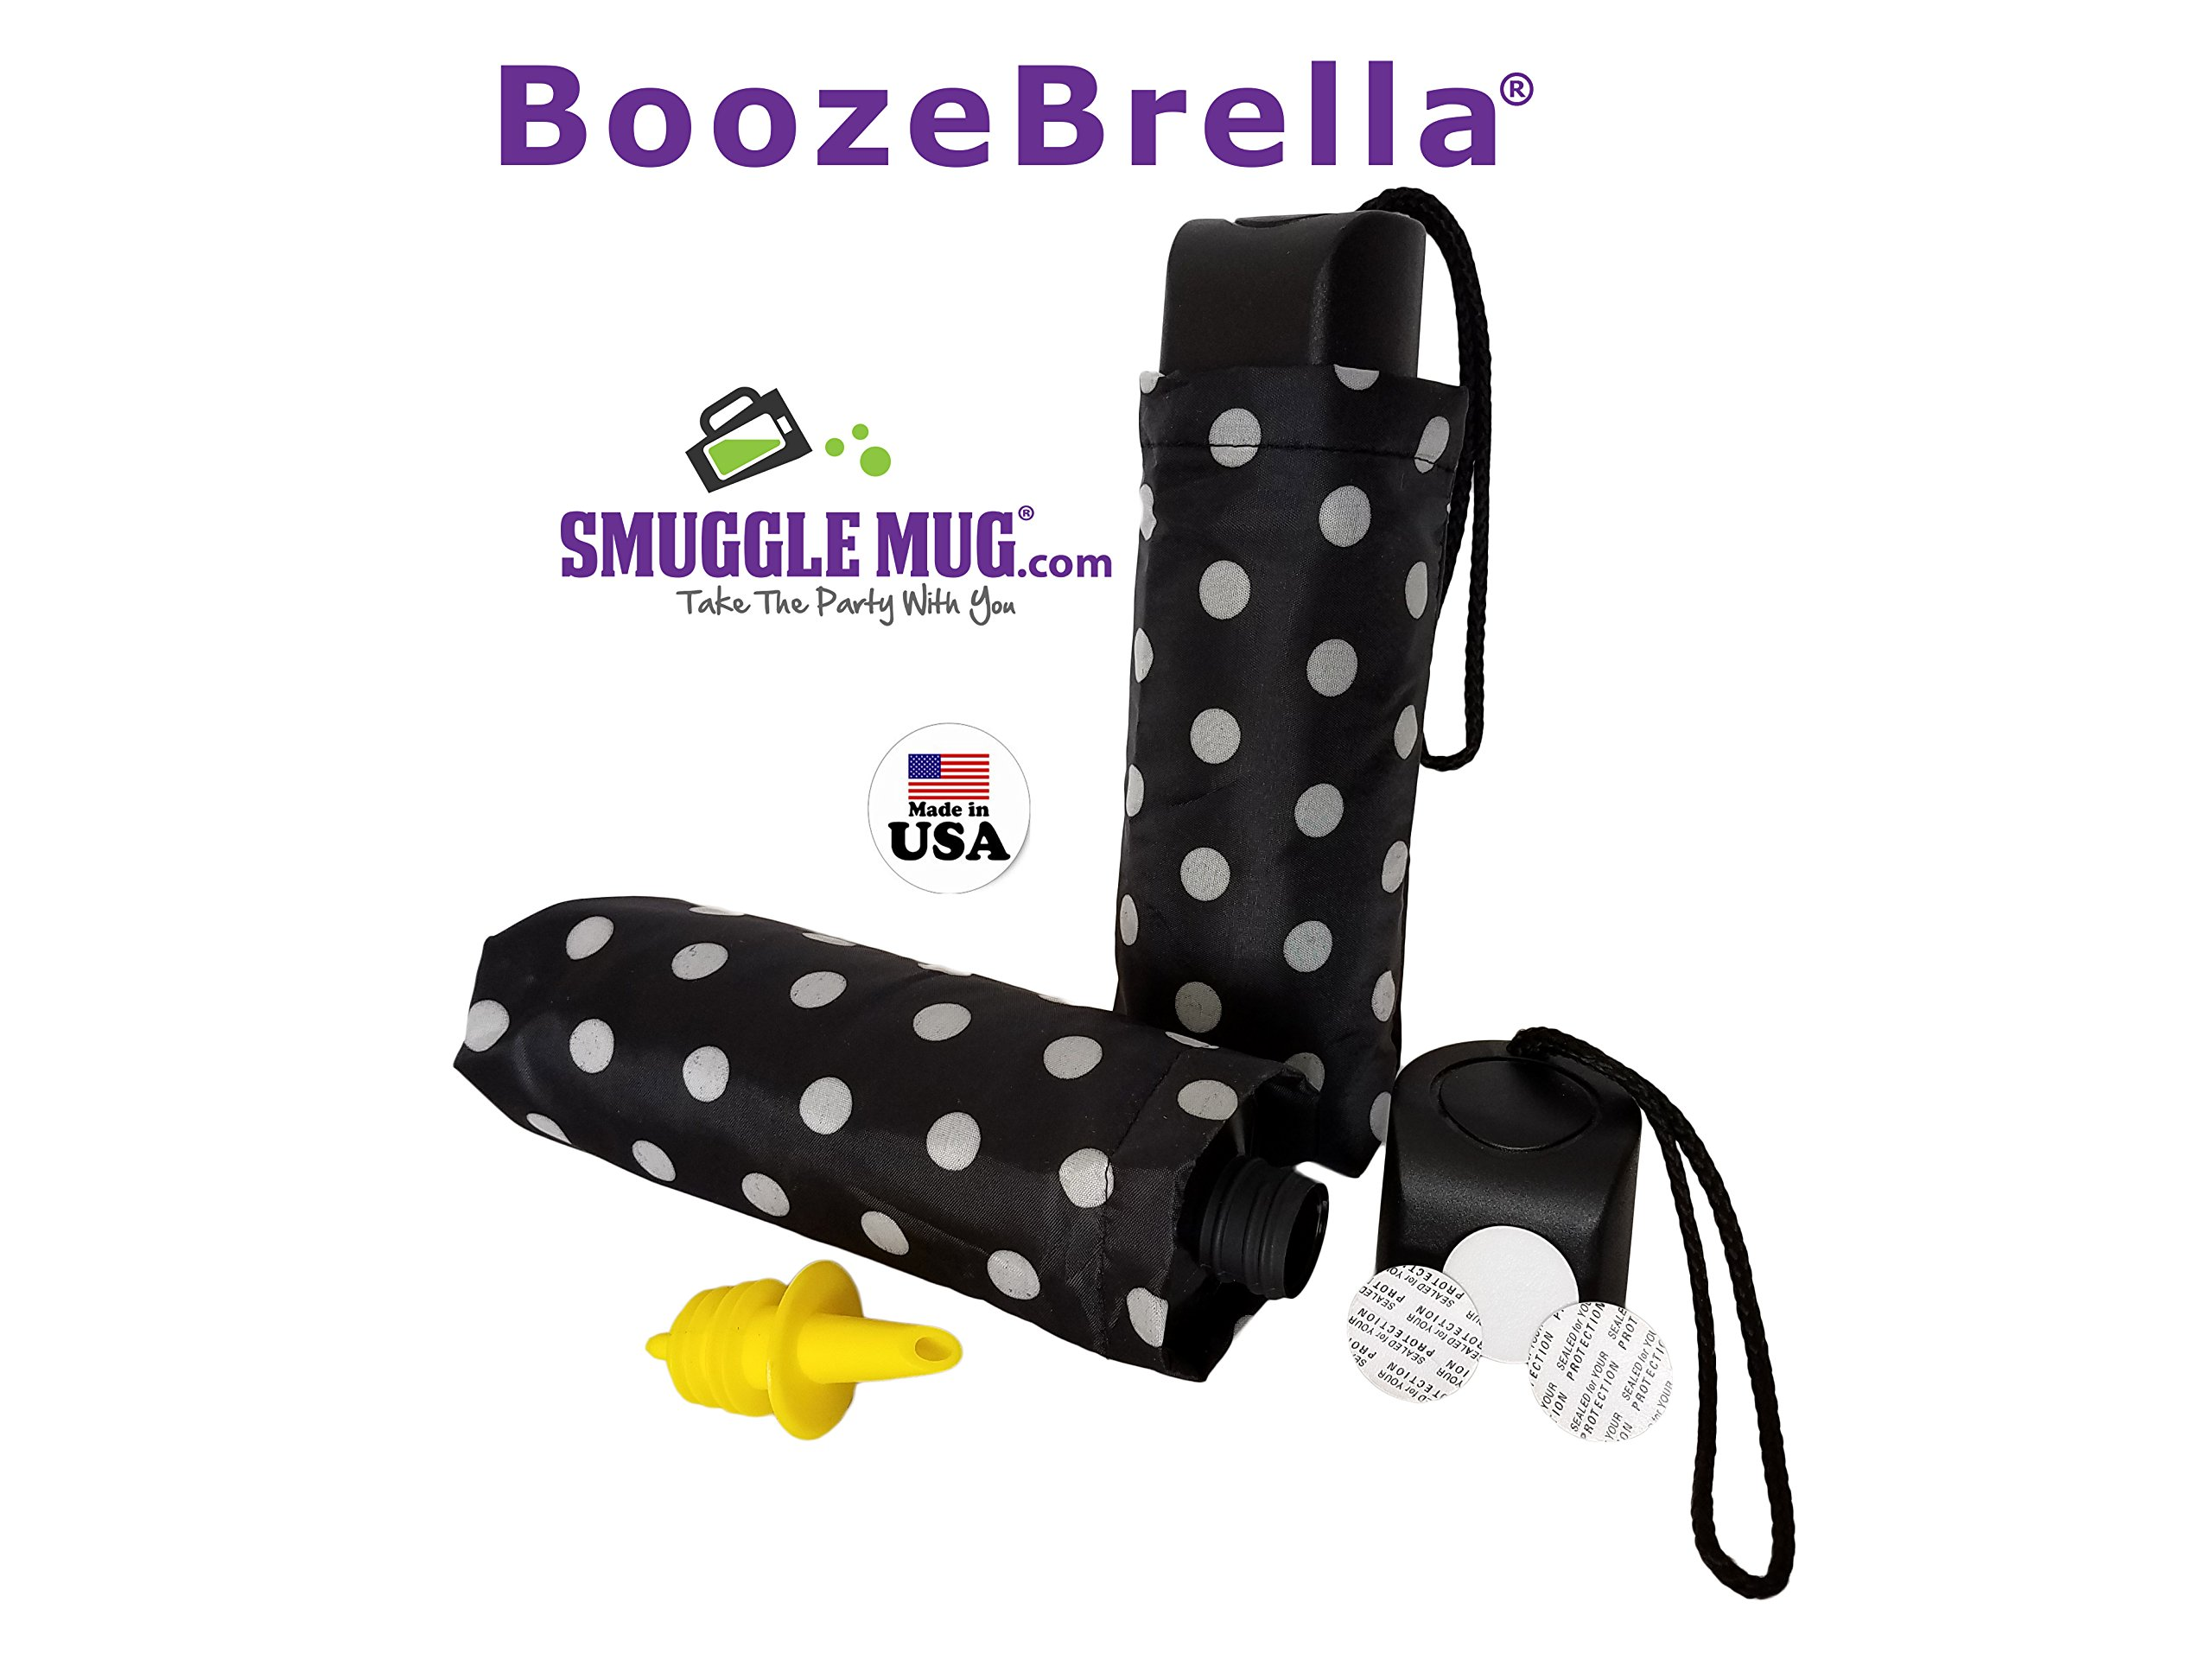 BoozeBrella by Smuggle Mug. Disguised 9 Ounce Umbrella Flask(Black w/ White Dot)